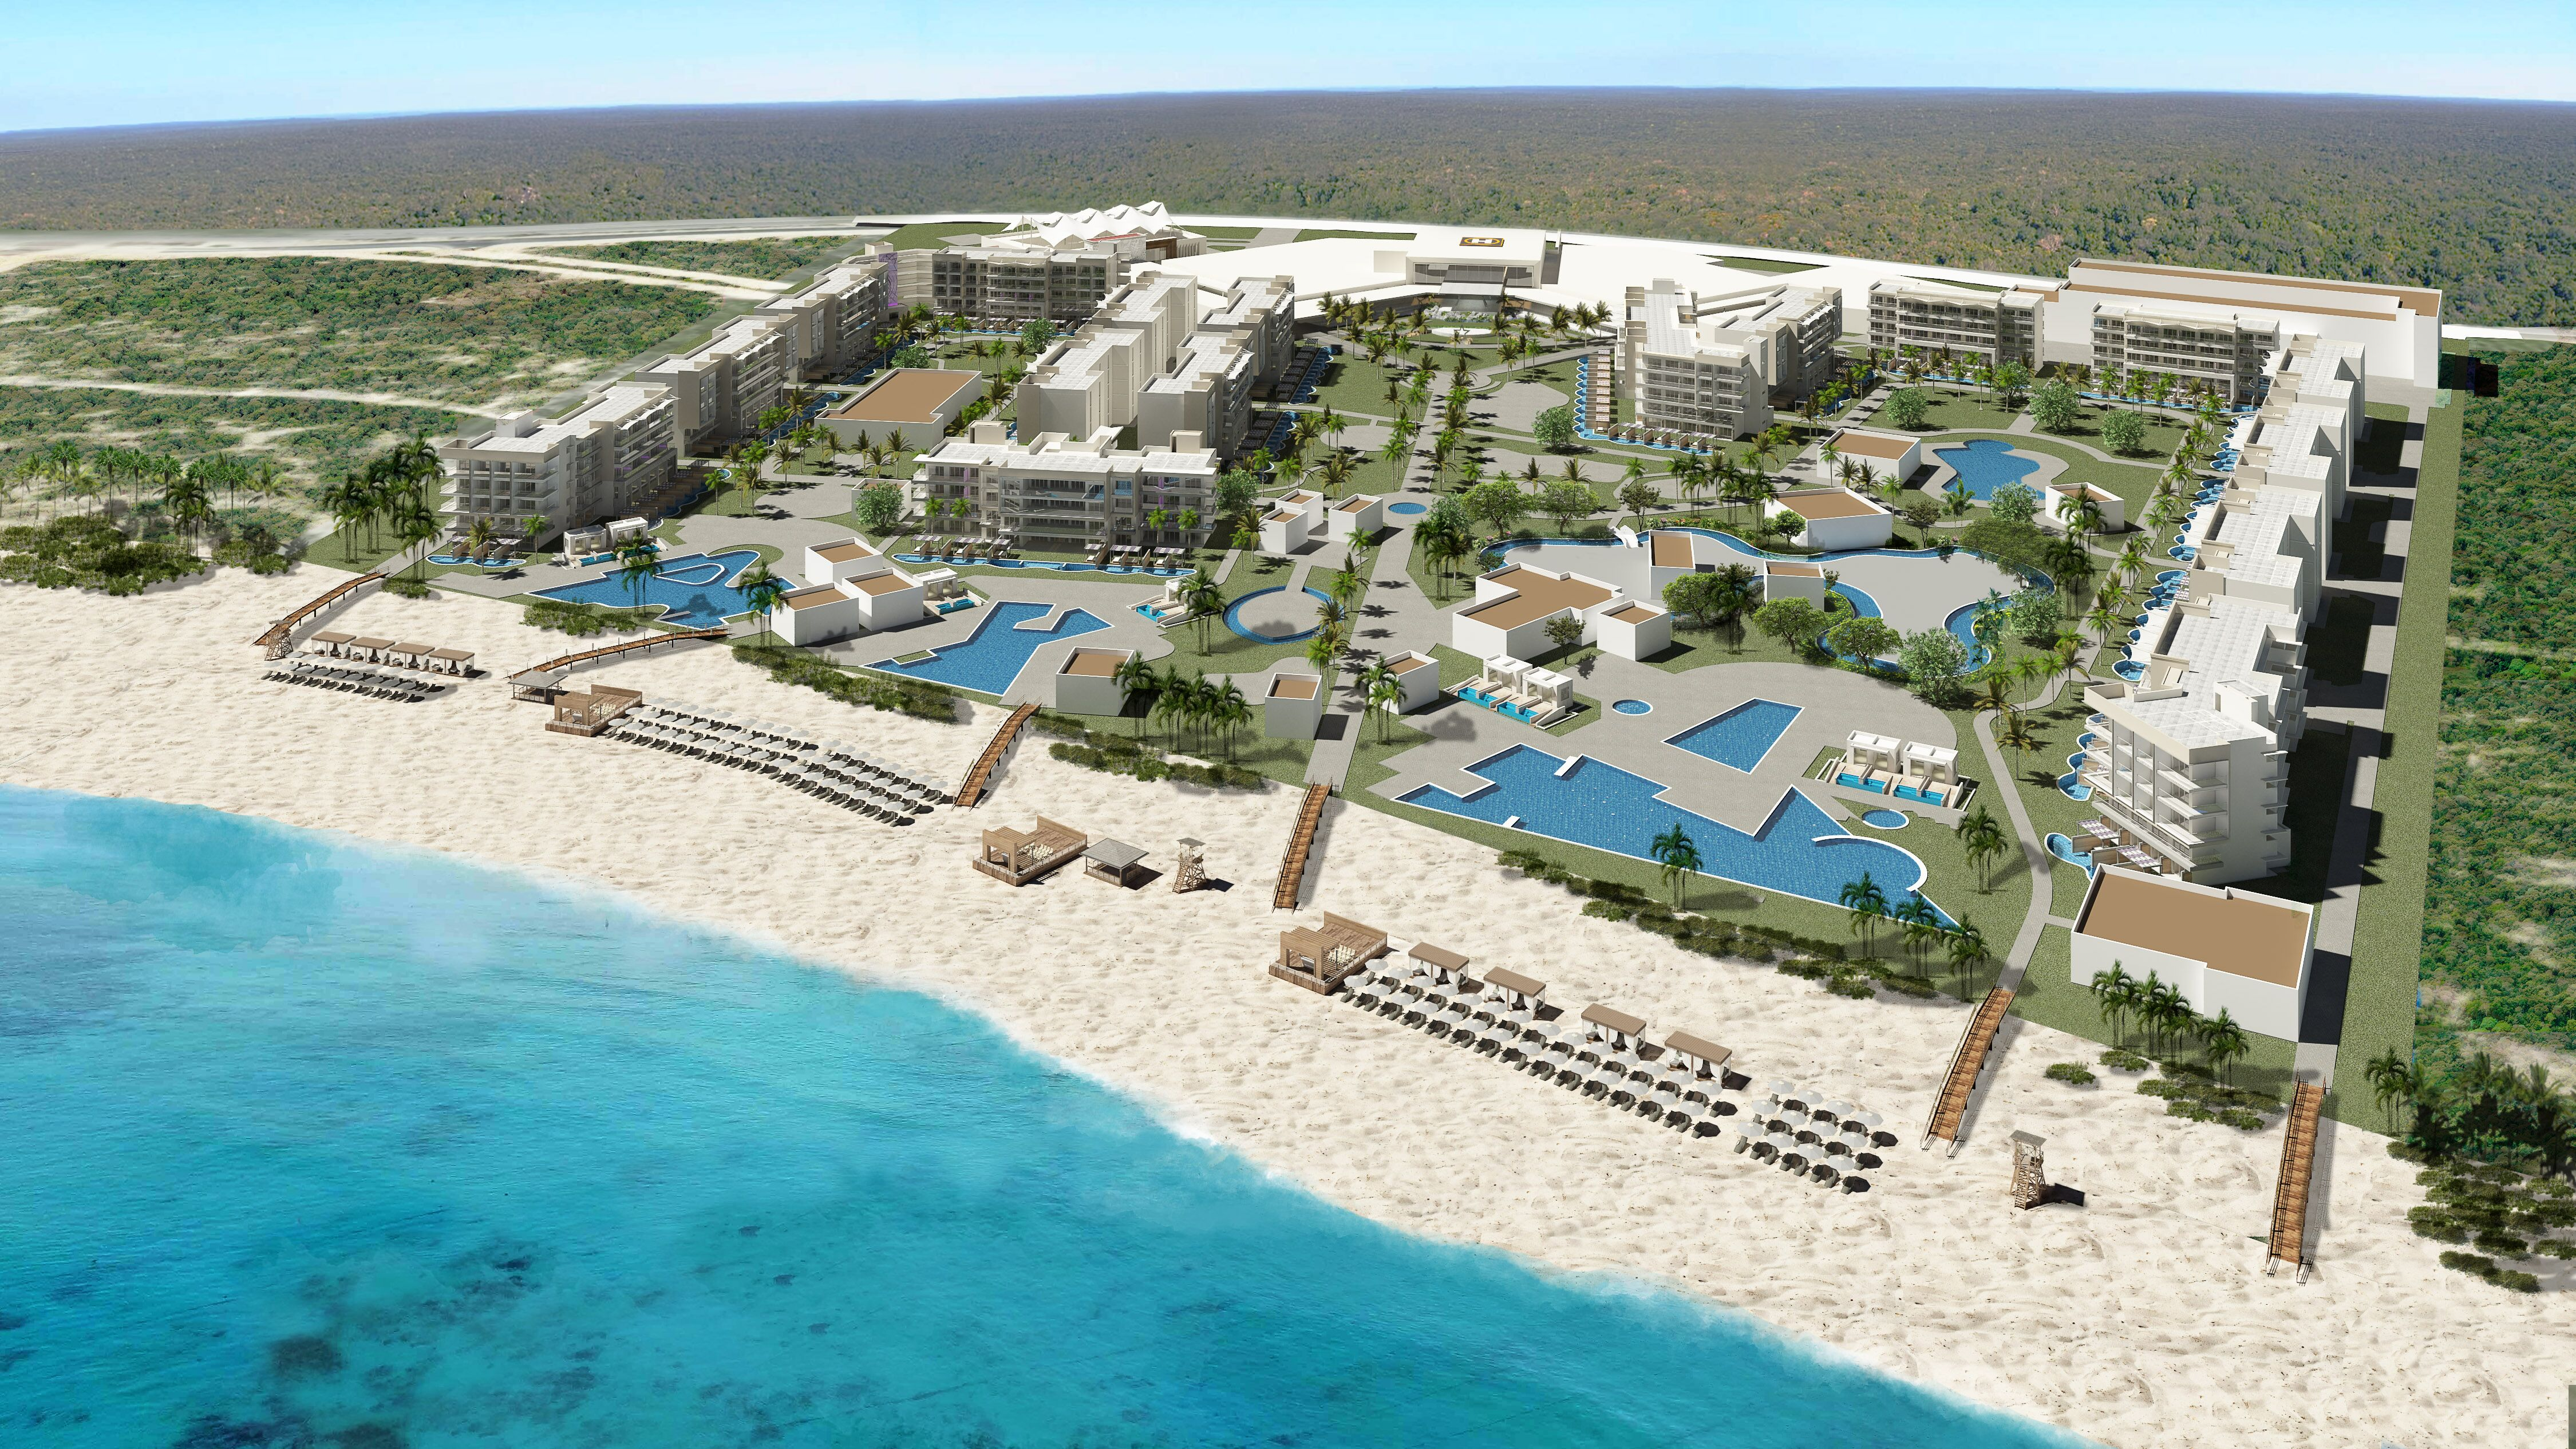 New Planet Hollywood Beach Resort coming to Cancun